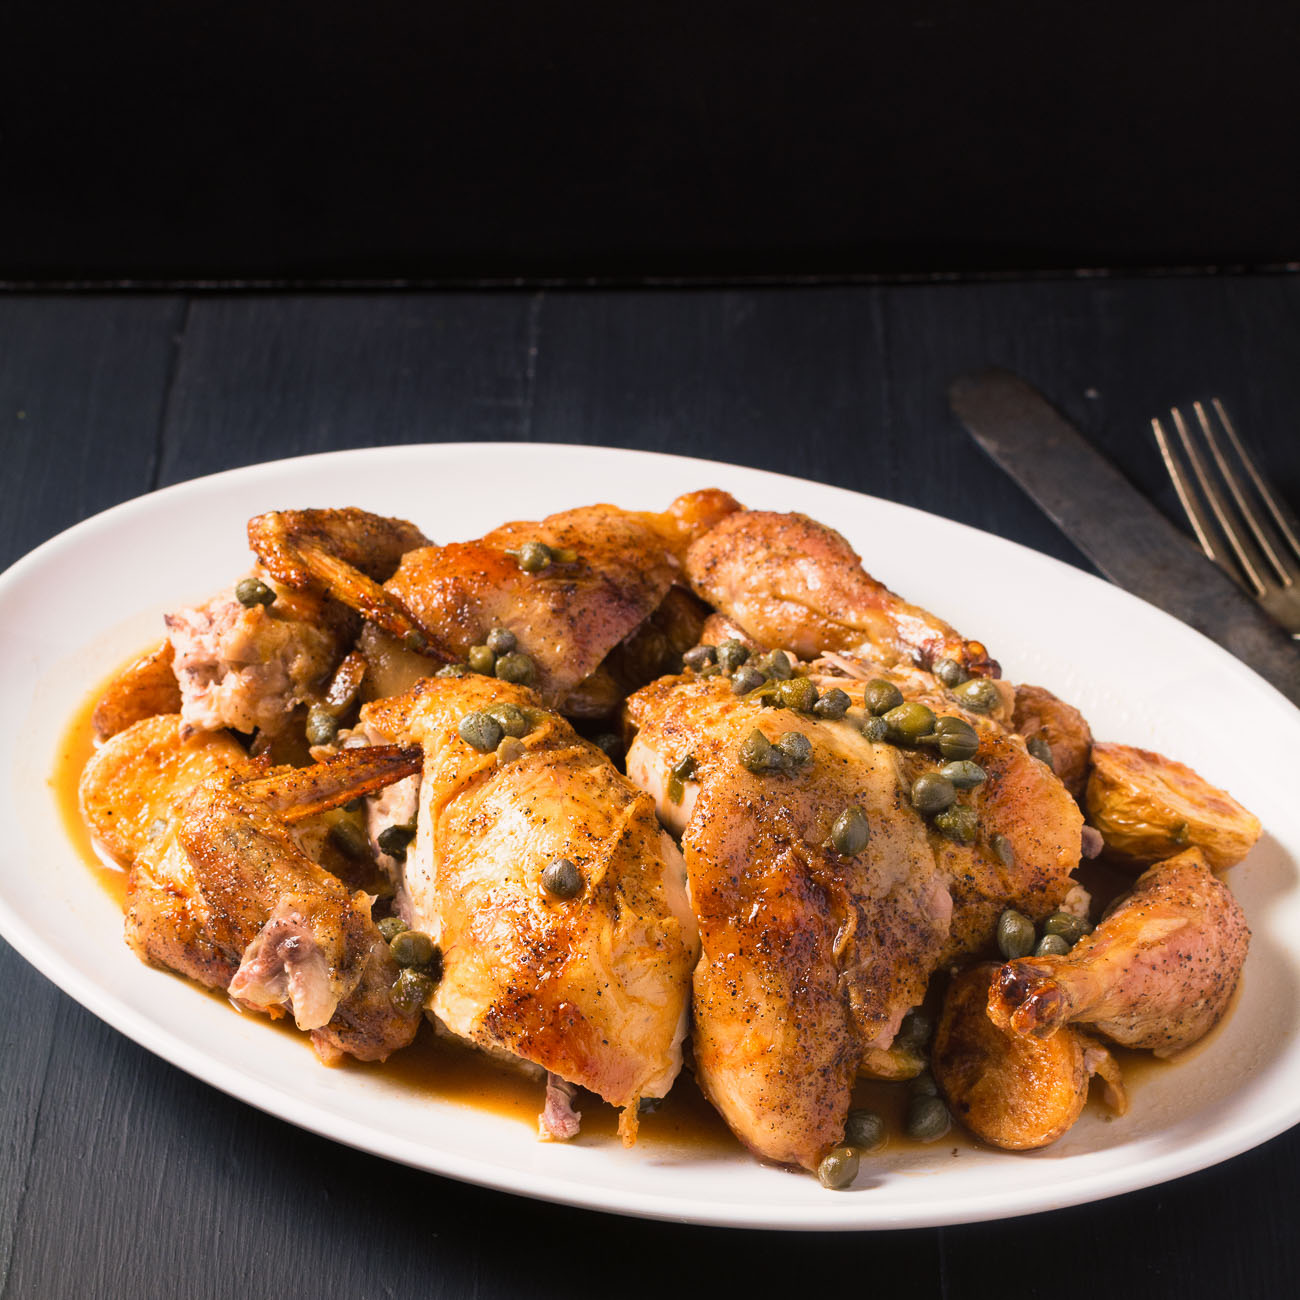 Lemon, capers and cornish hen come together in a great twist on traditional piccata.